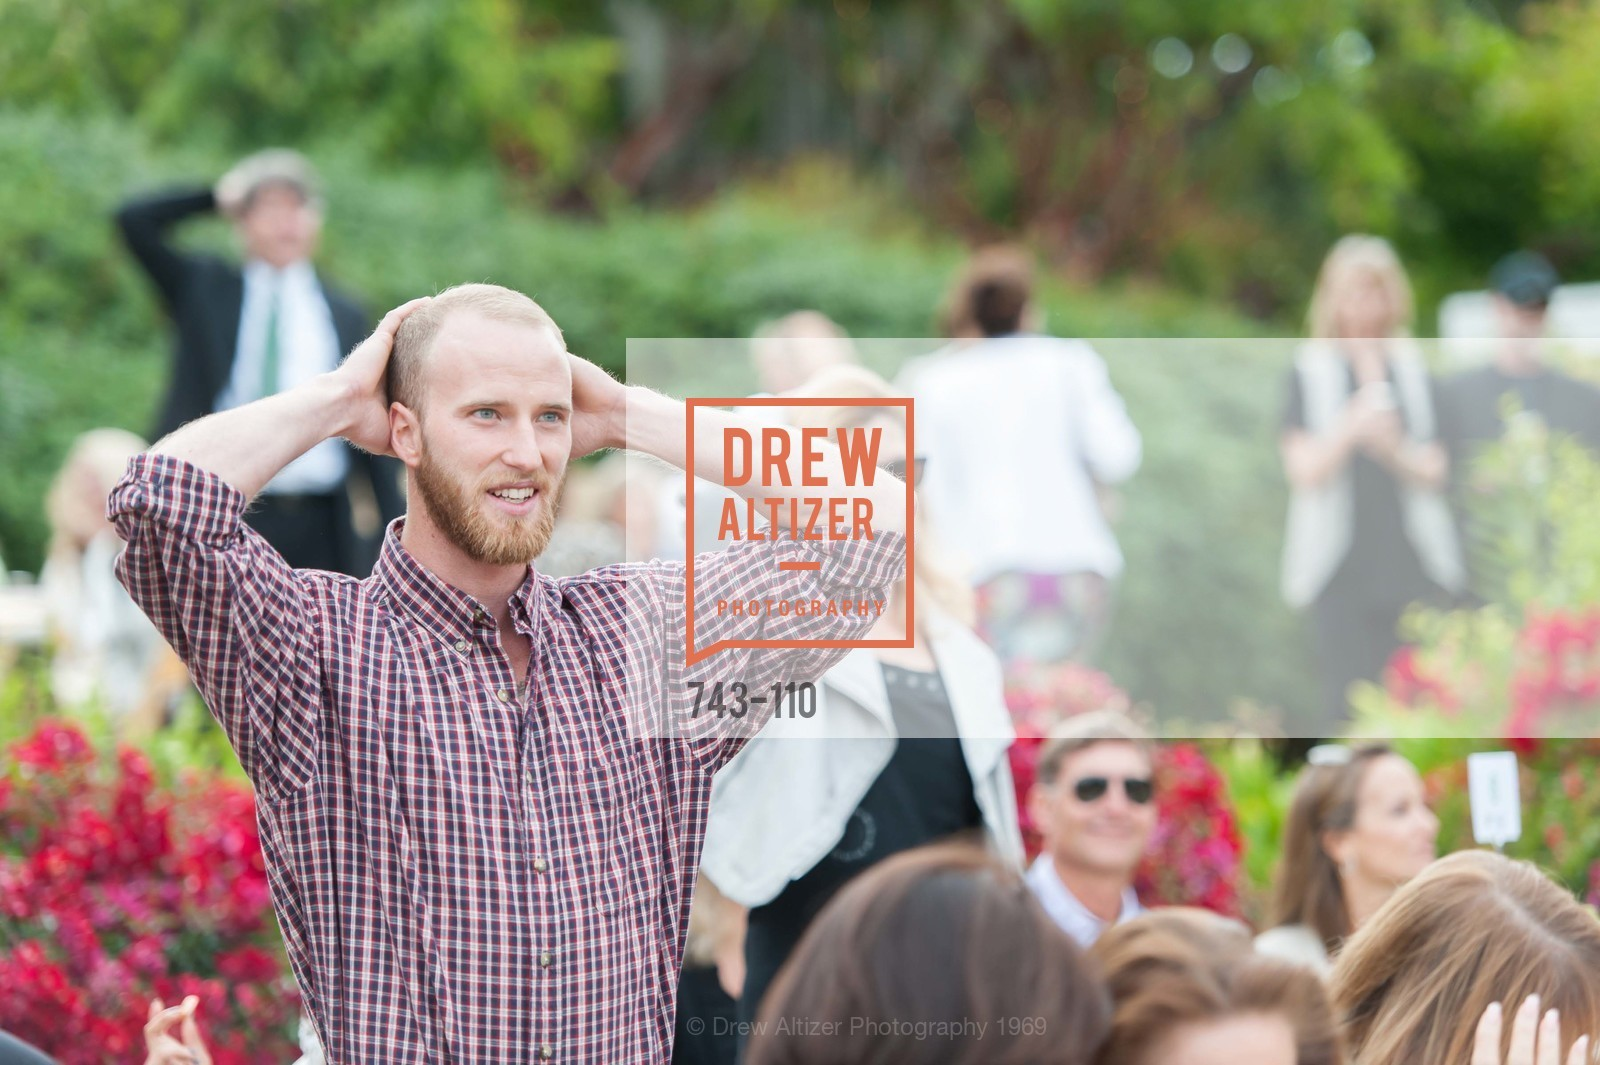 Elet Hall, LYME AID 2015 Benefiting the Bay Area Lyme Foundation, Private Residence, May 16th, 2015,Drew Altizer, Drew Altizer Photography, full-service agency, private events, San Francisco photographer, photographer california